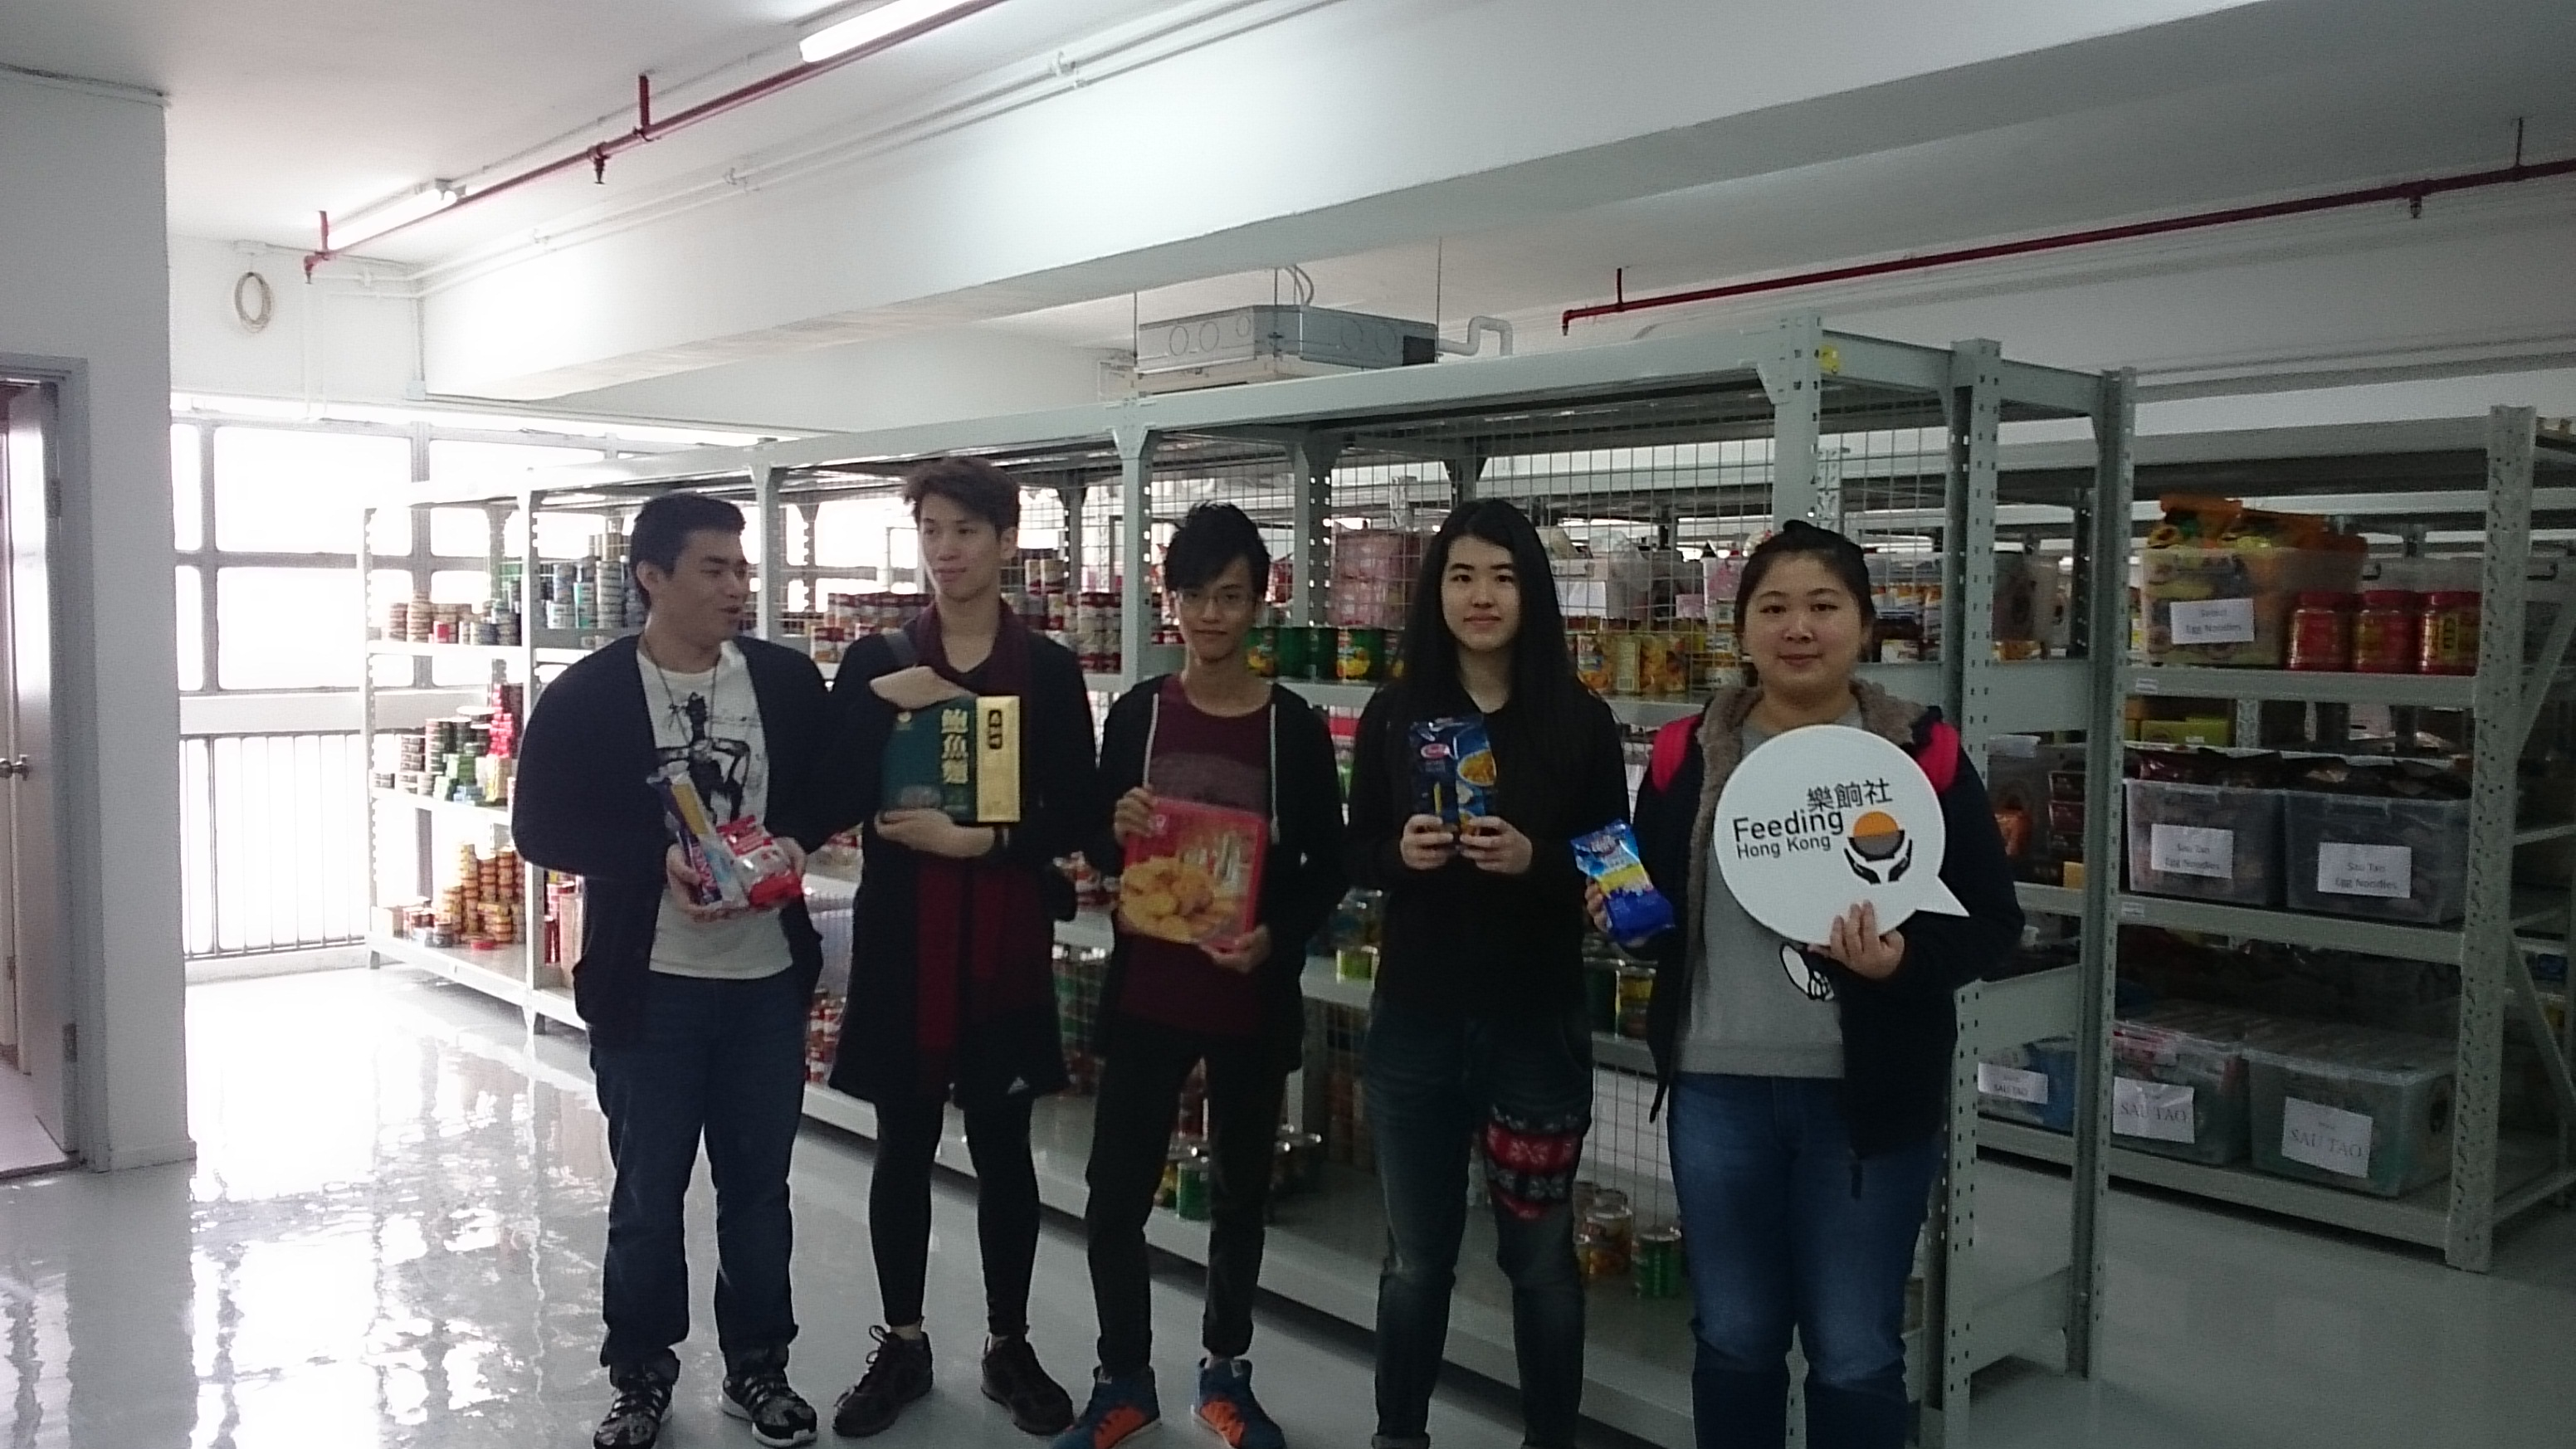 Visit to Feeding Hong Kong in Yau Tong - Photo - 9